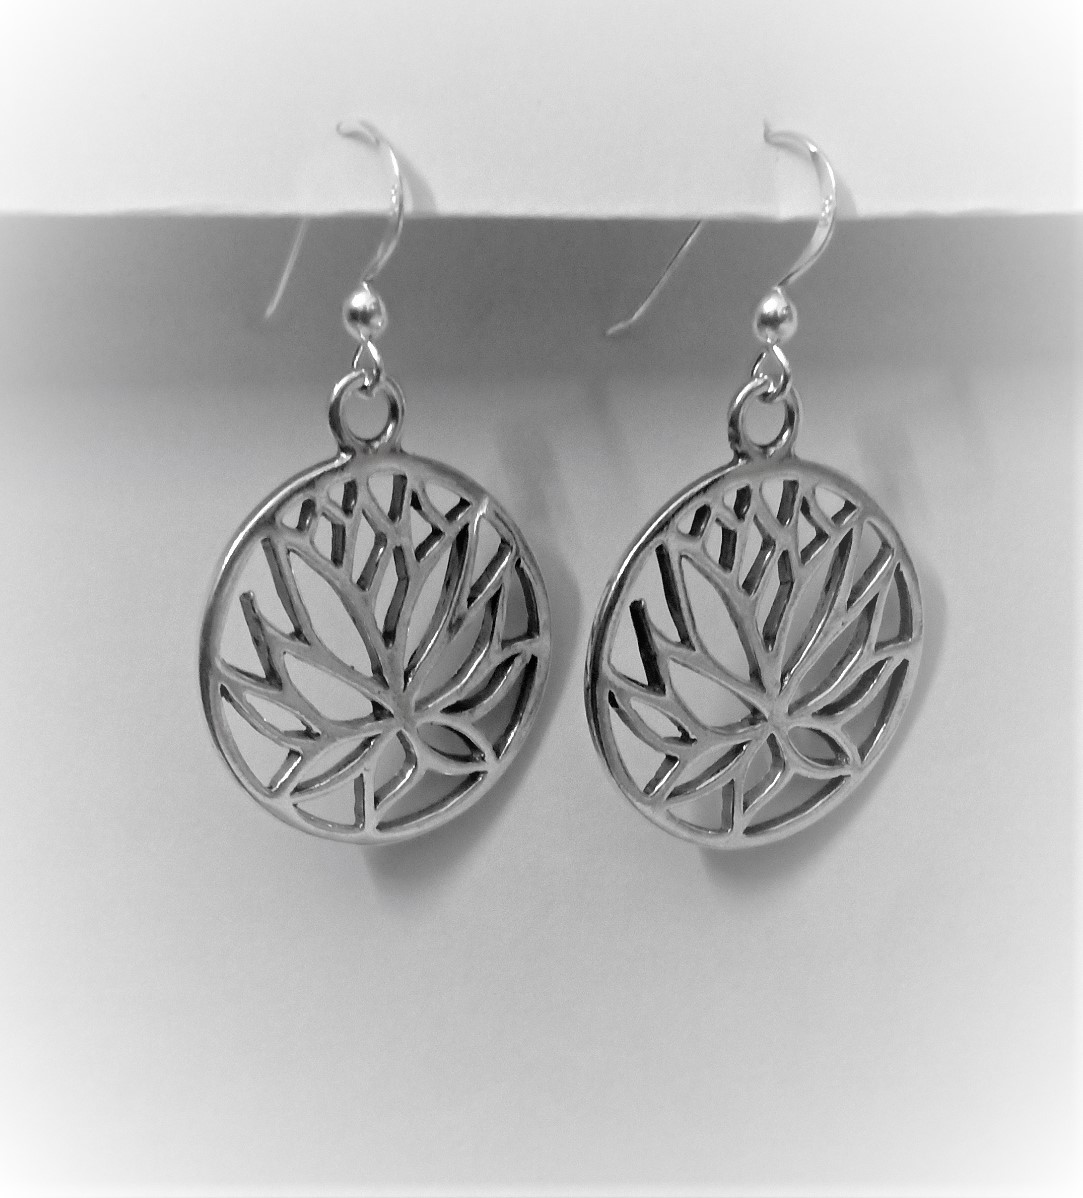 925 Sterling Silver Circle Lotus Push-Back Earrings